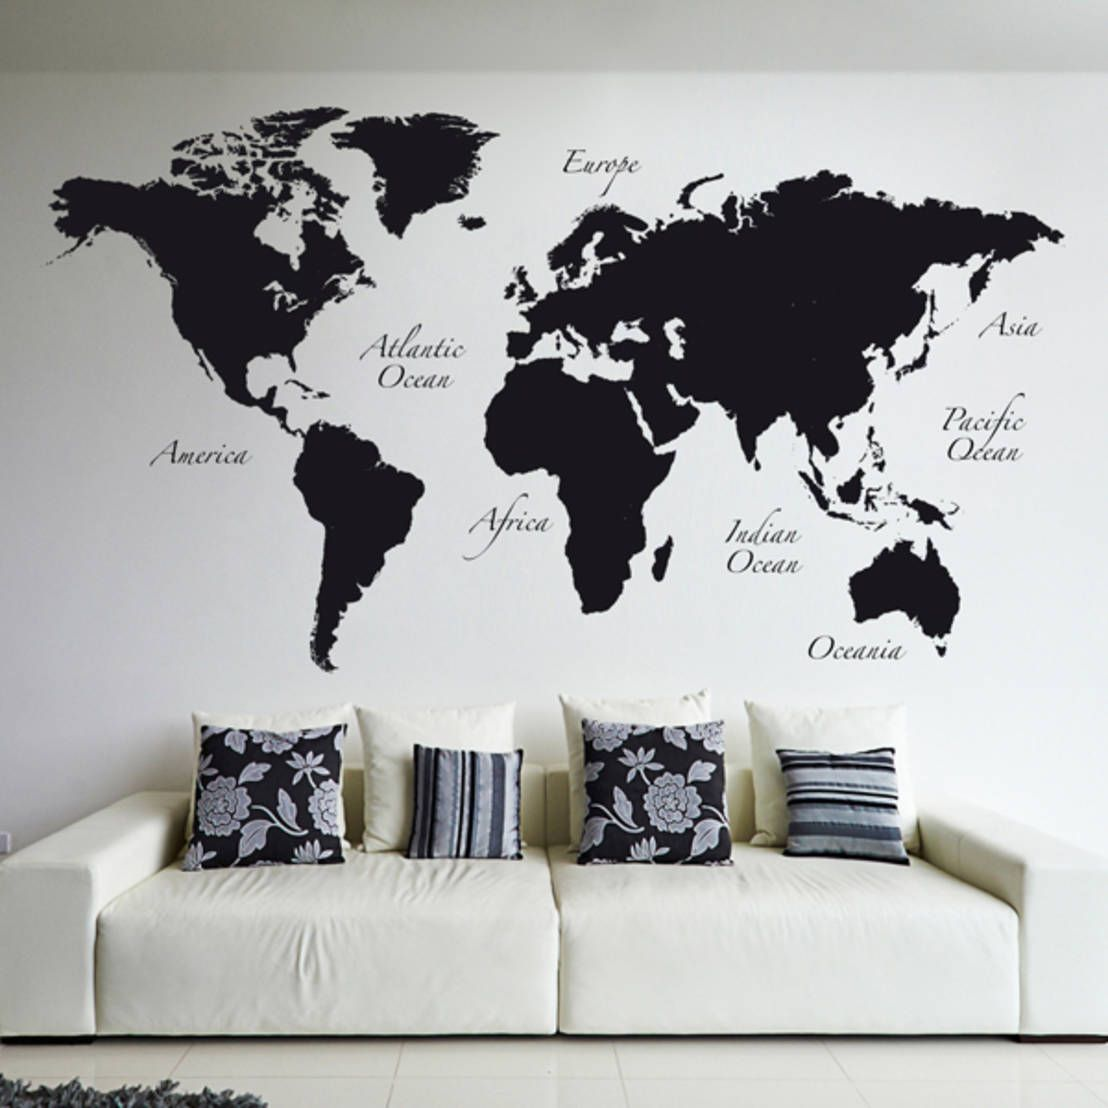 Upgrade your interior so it no longer bores you to tears wall black world map wall tattoos by crearreda wallstickers gumiabroncs Image collections